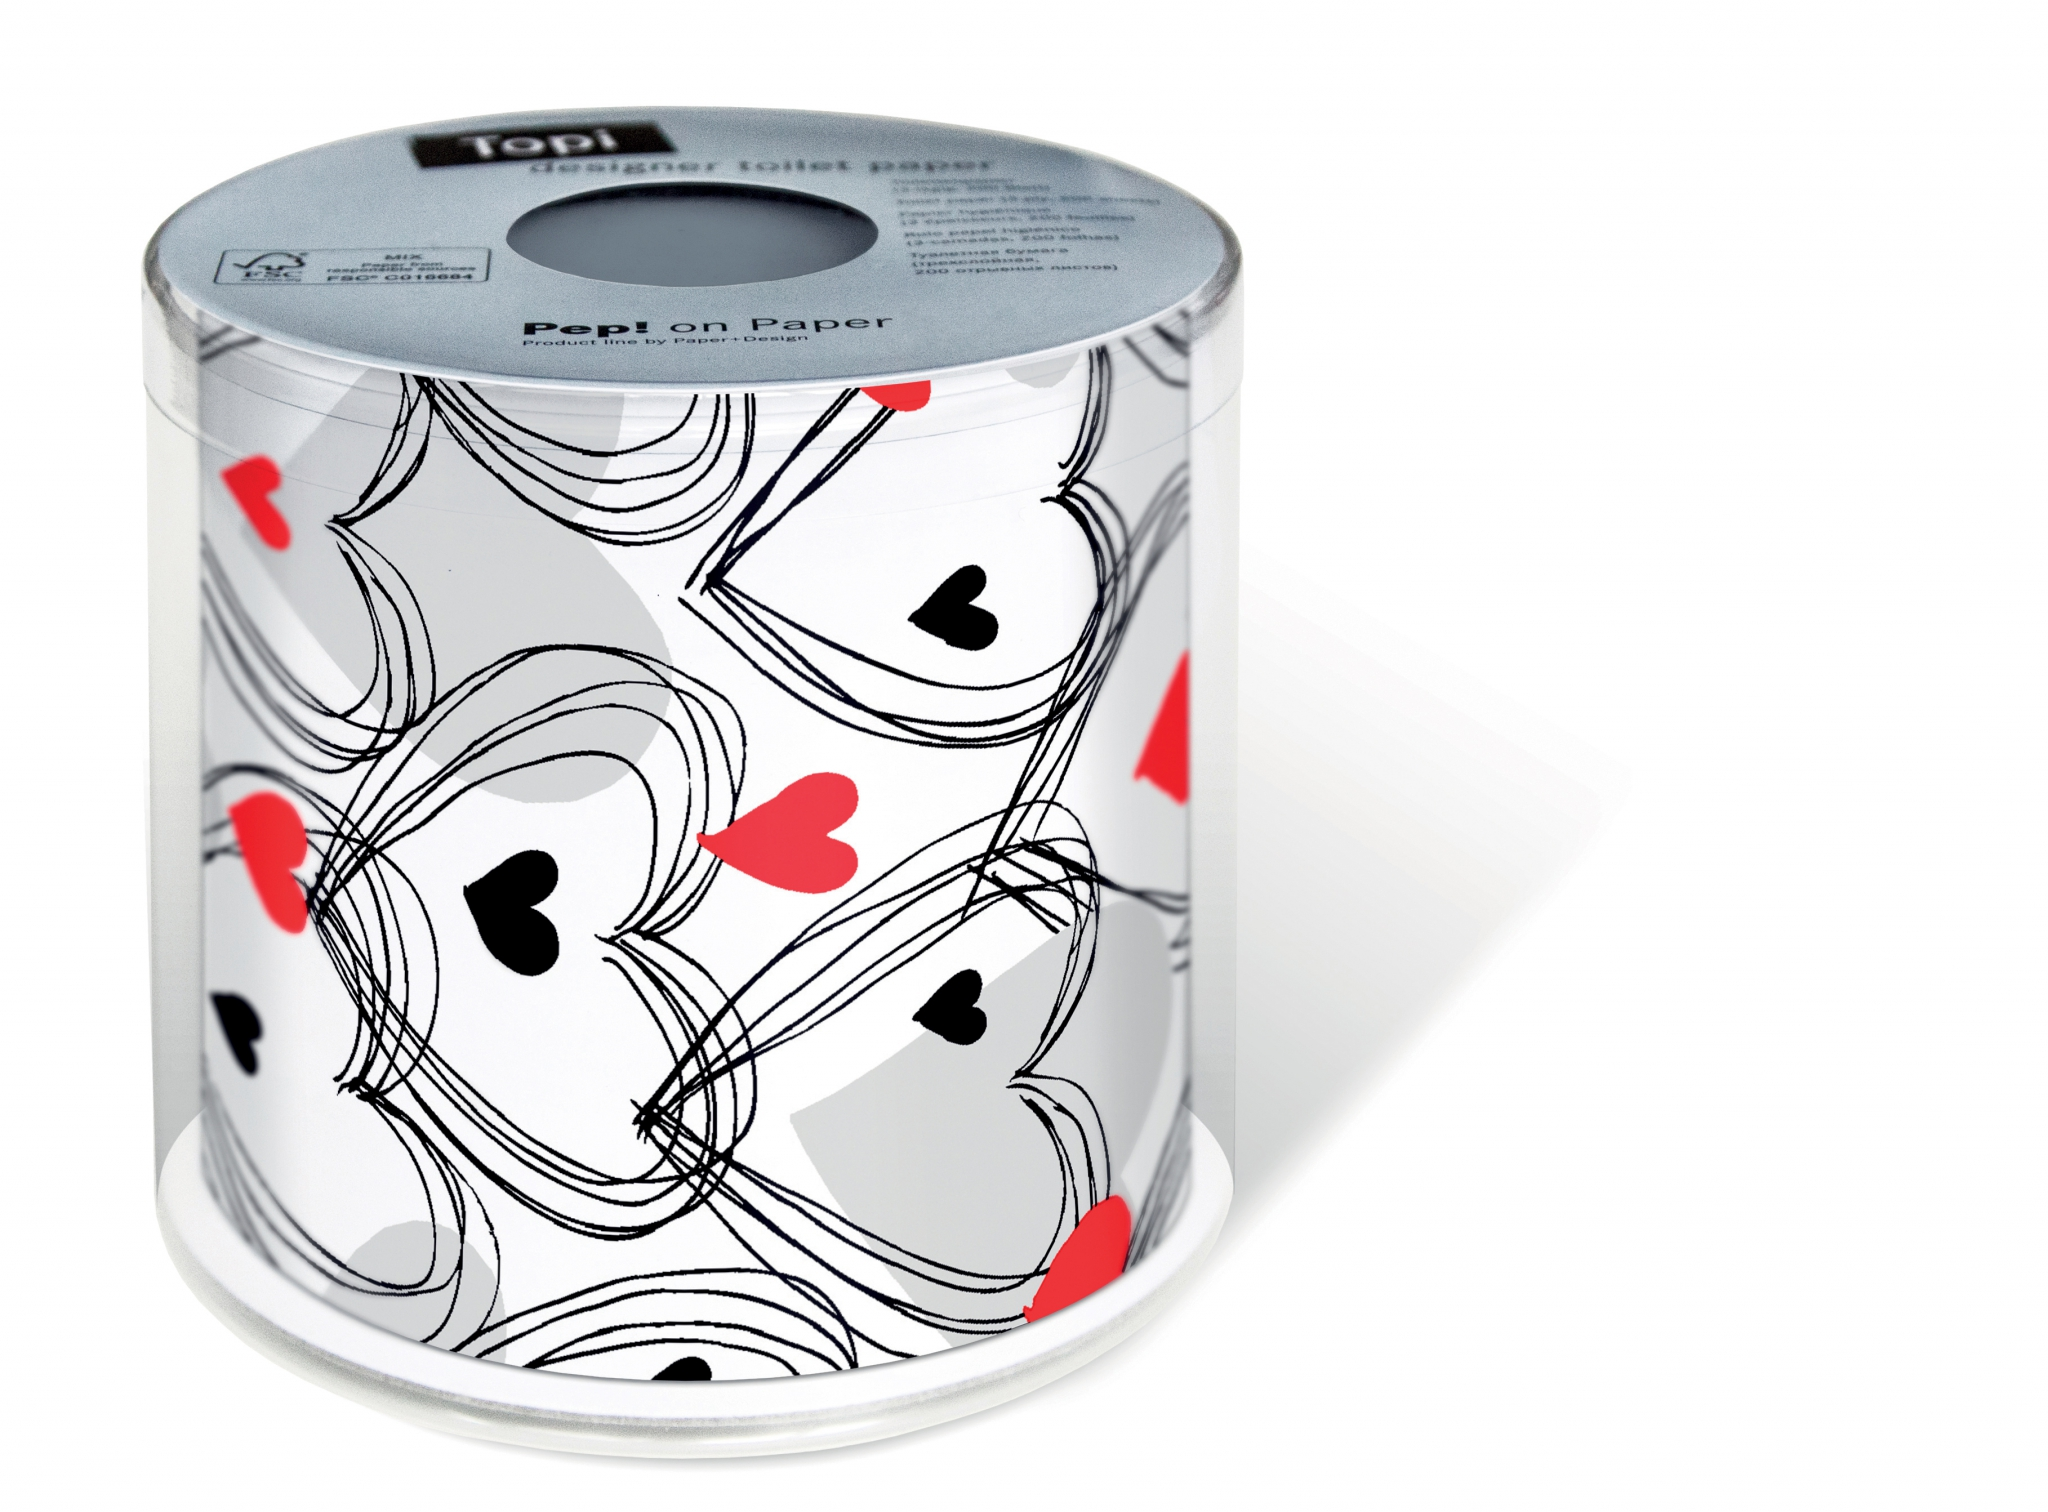 bedrucktes Toilettenpapier - Topi Shower of hearts